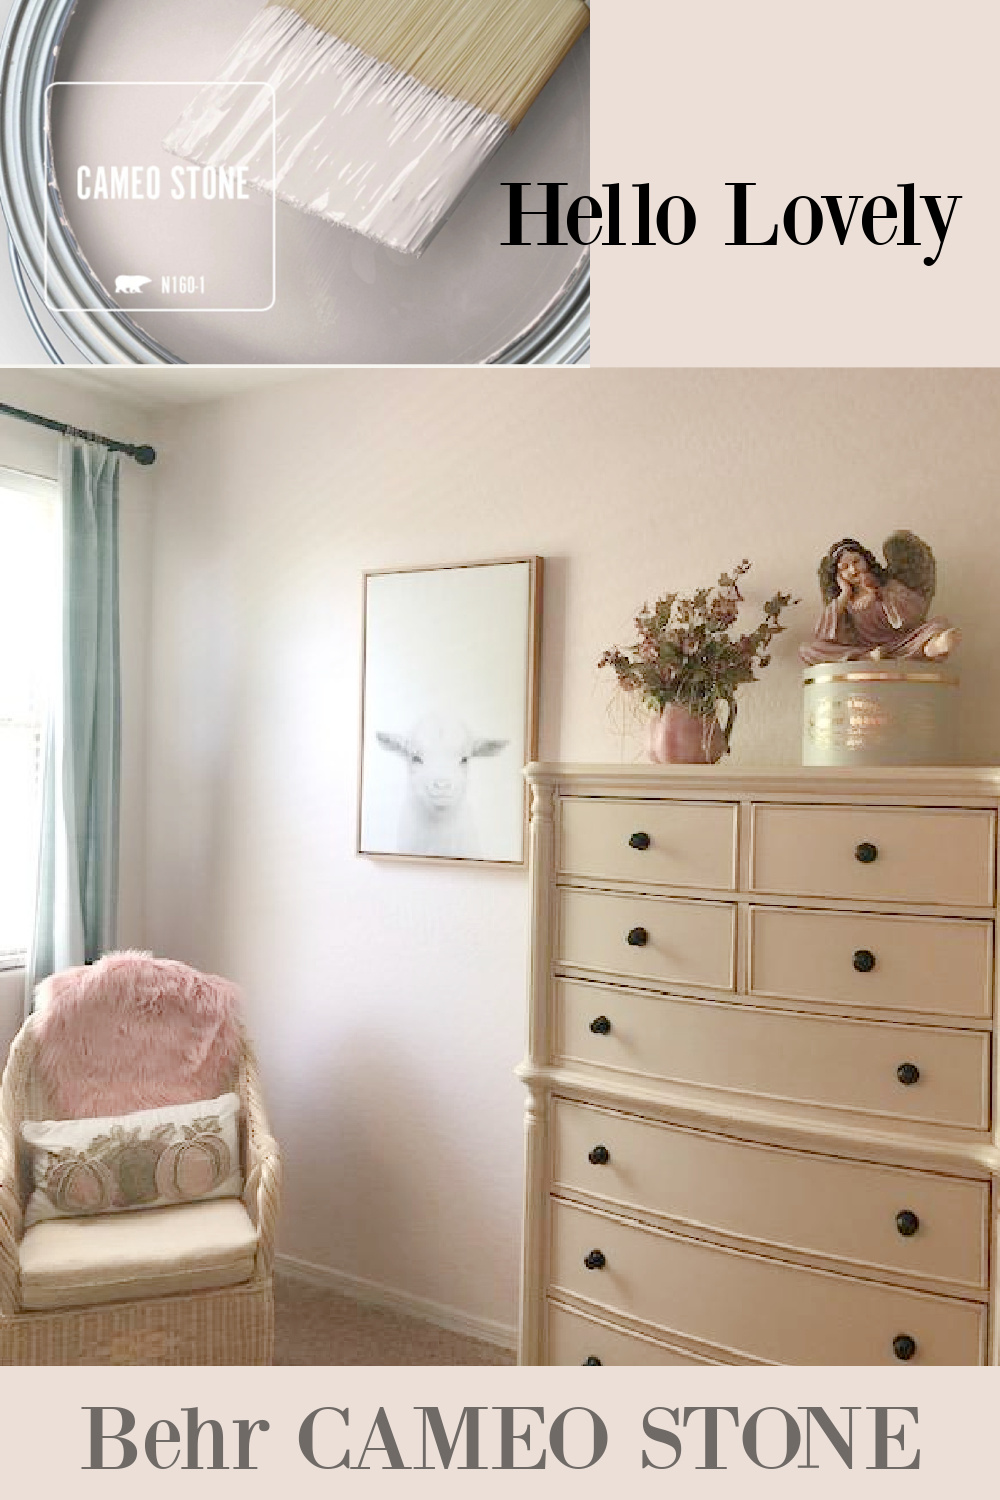 Behr Cameo Stone pale pink paint color is a hushed nude soft pink shade for bedrooms and sophisticated chic spaces - Hello Lovely. #cameostone #pinkpaintcolors